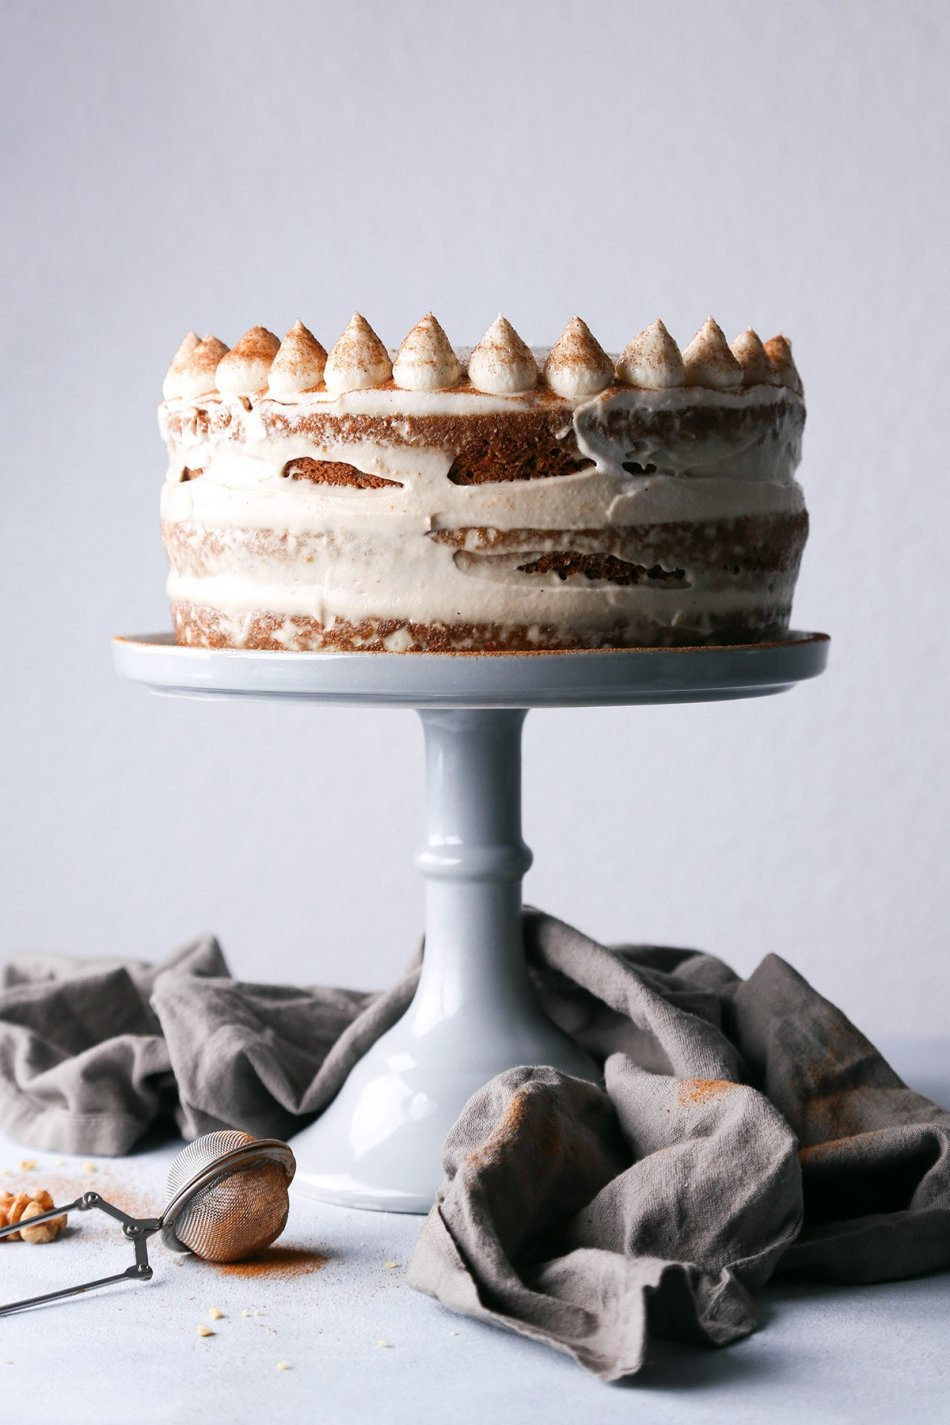 Simple Carrot Cake with Cashew Frosting | Vegan with Gluten-Free Option